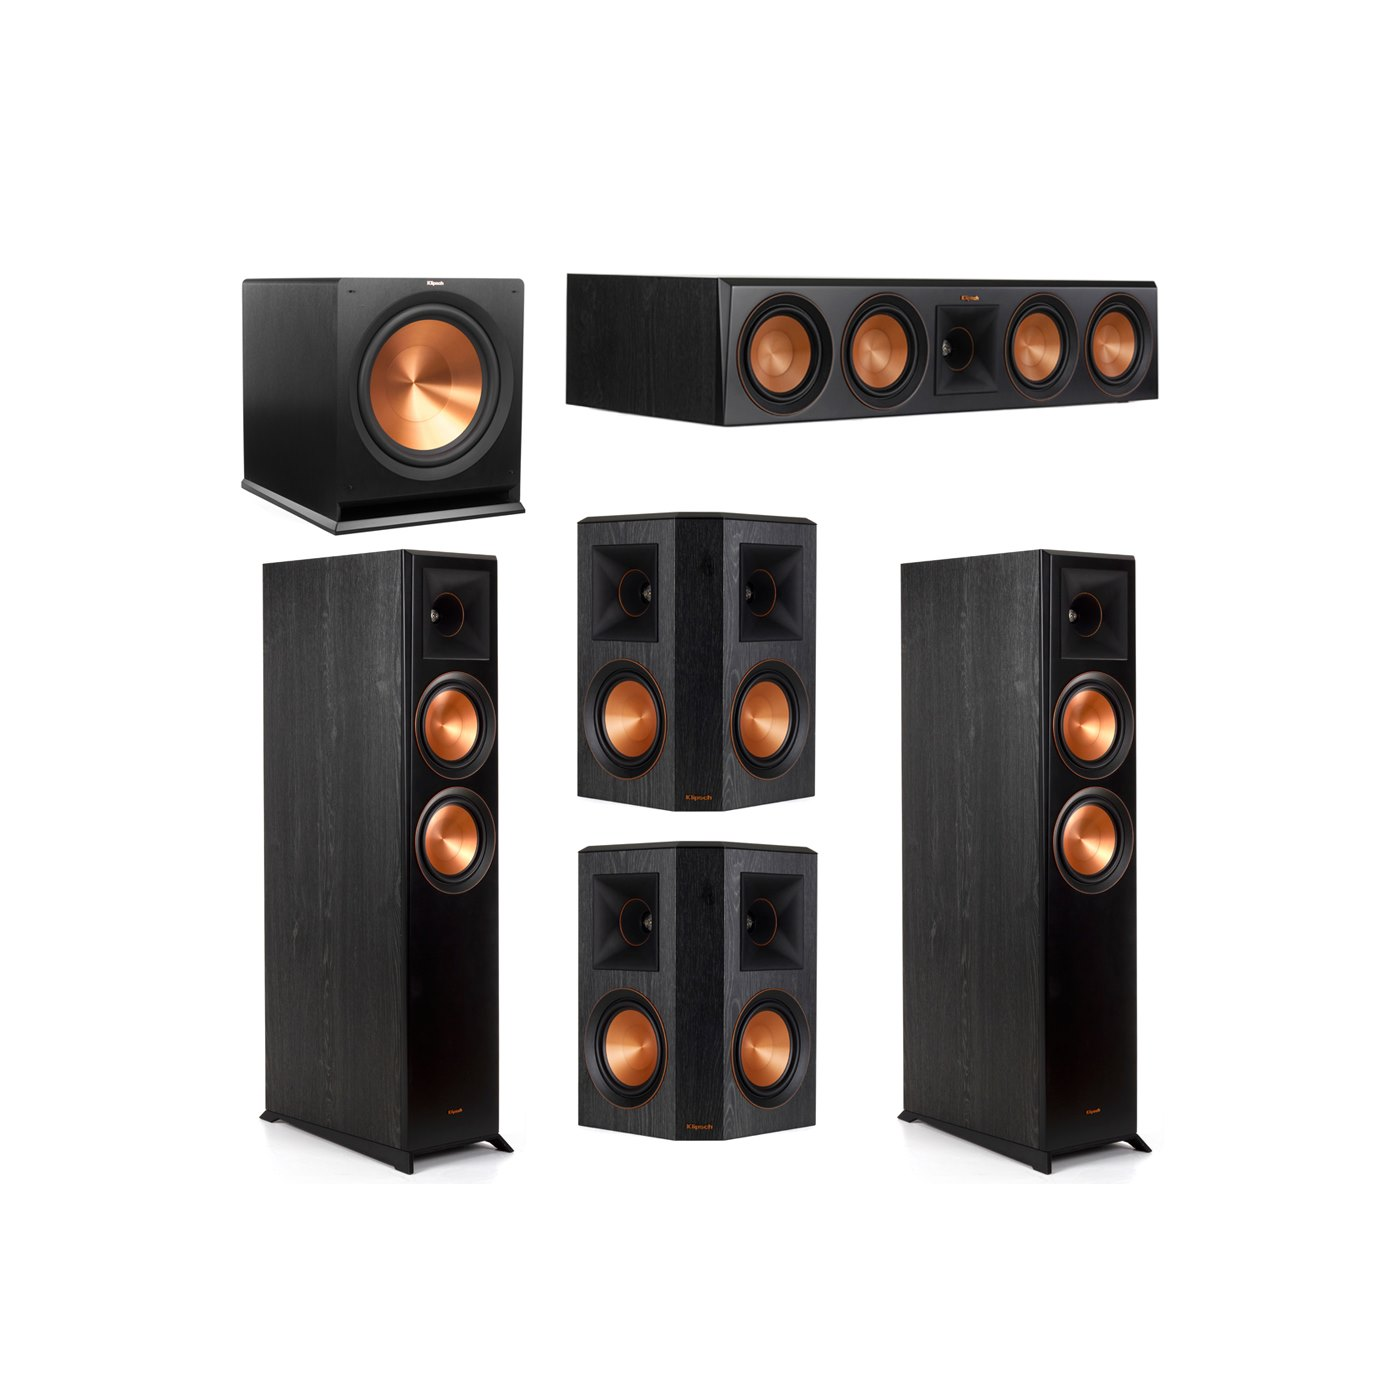 Klipsch 5.1 System with 2 RP-6000F Floorstanding Speakers, 1 Klipsch RP-504C Center Speaker, 2 Klipsch RP-502S Surround Speakers, 1 Klipsch R-115SW Subwoofer